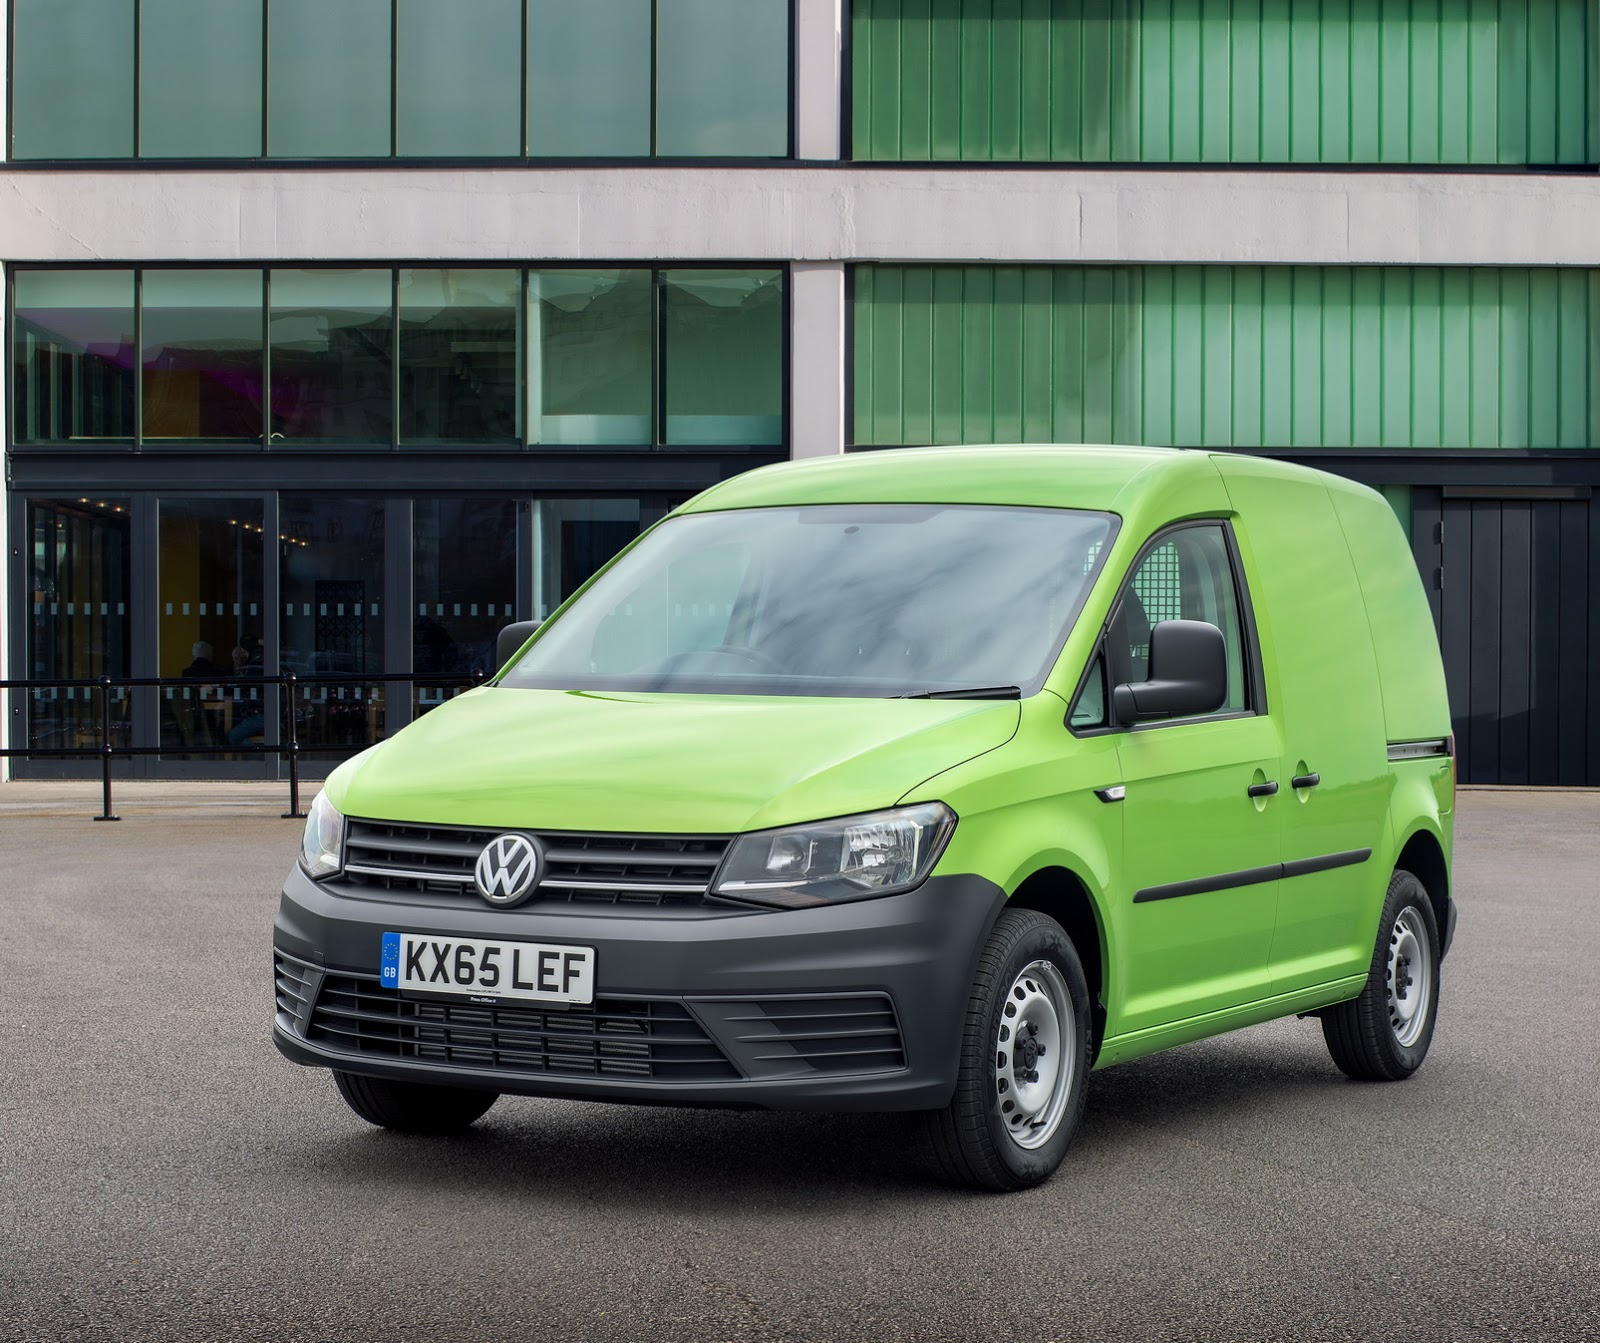 vw adds more euro 6 engines to caddy uk range carscoops. Black Bedroom Furniture Sets. Home Design Ideas